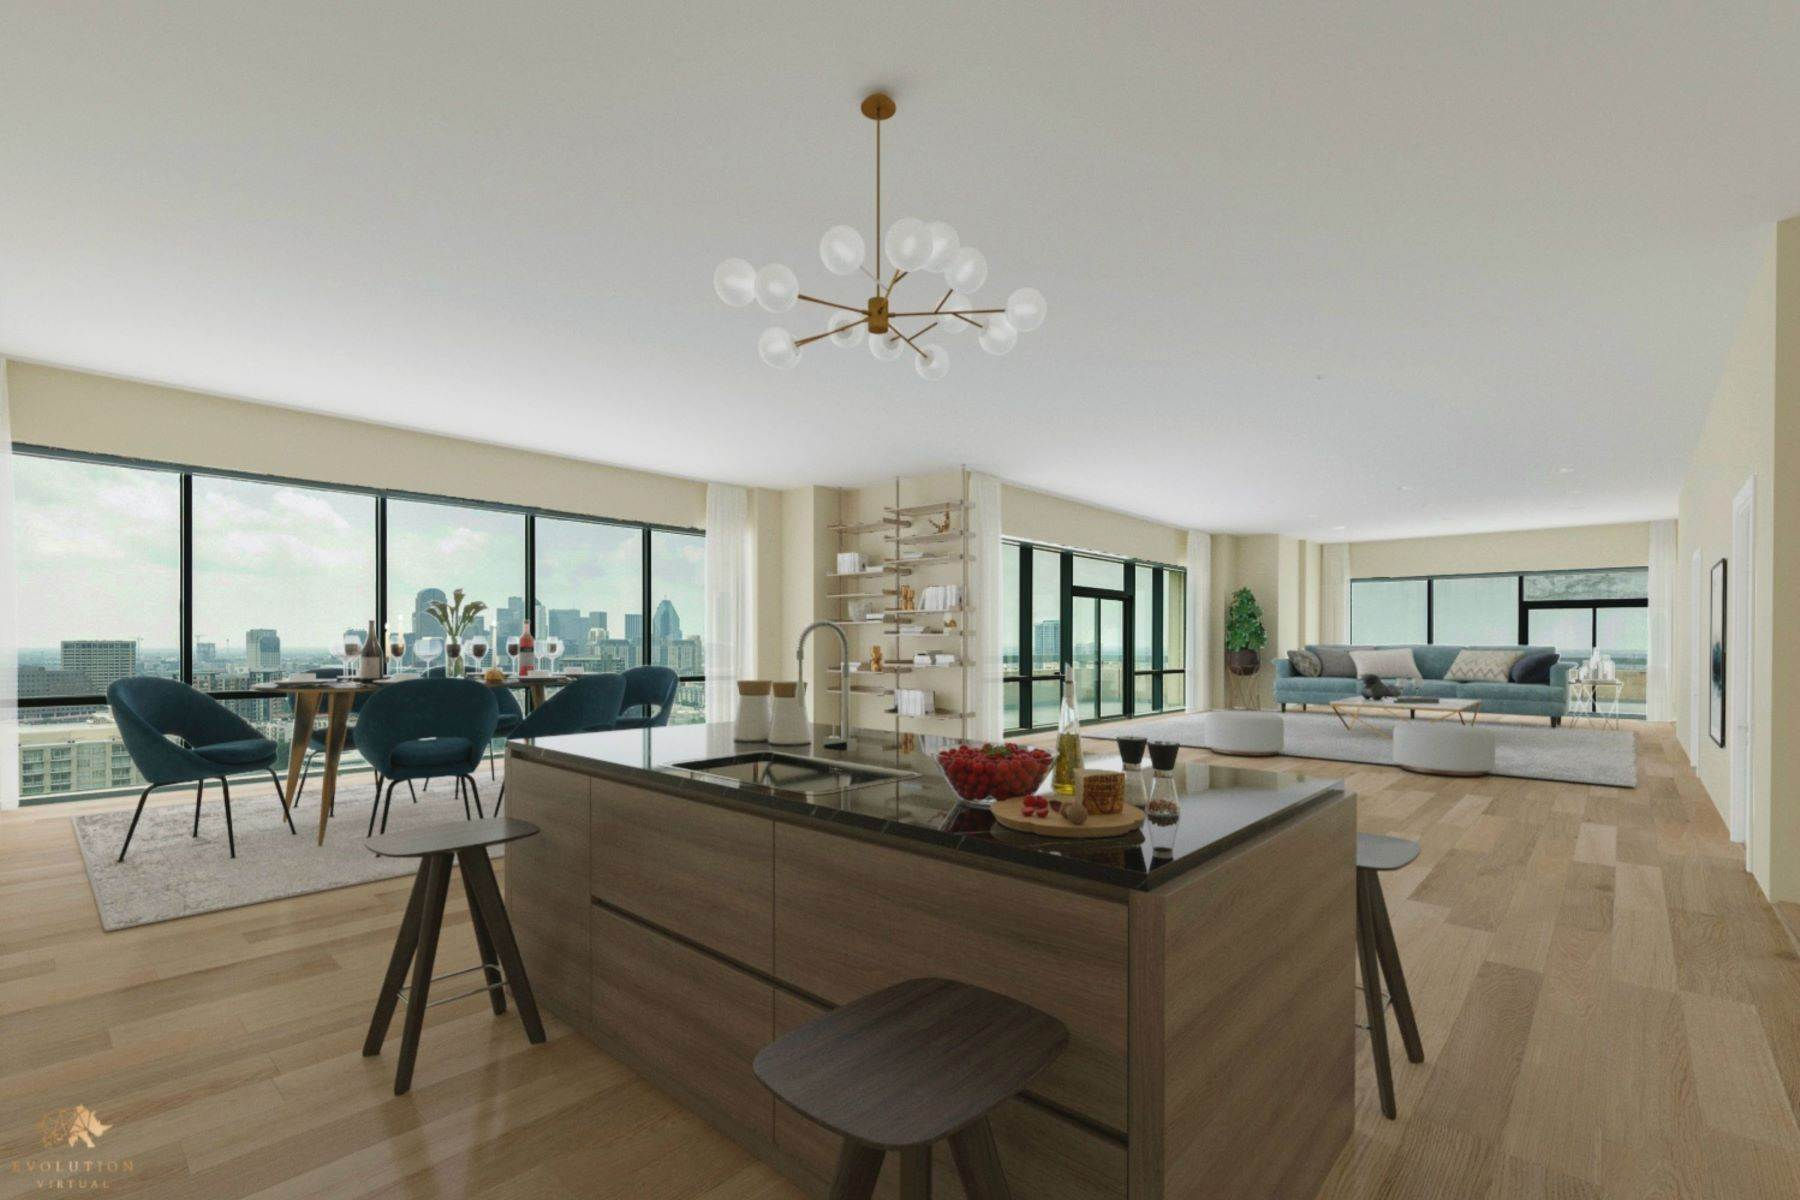 Condominiums for Sale at Three story penthouse shell, with unbelievable downtown Dallas views! 3111 Welborn Street, #1701 Dallas, Texas 75219 United States